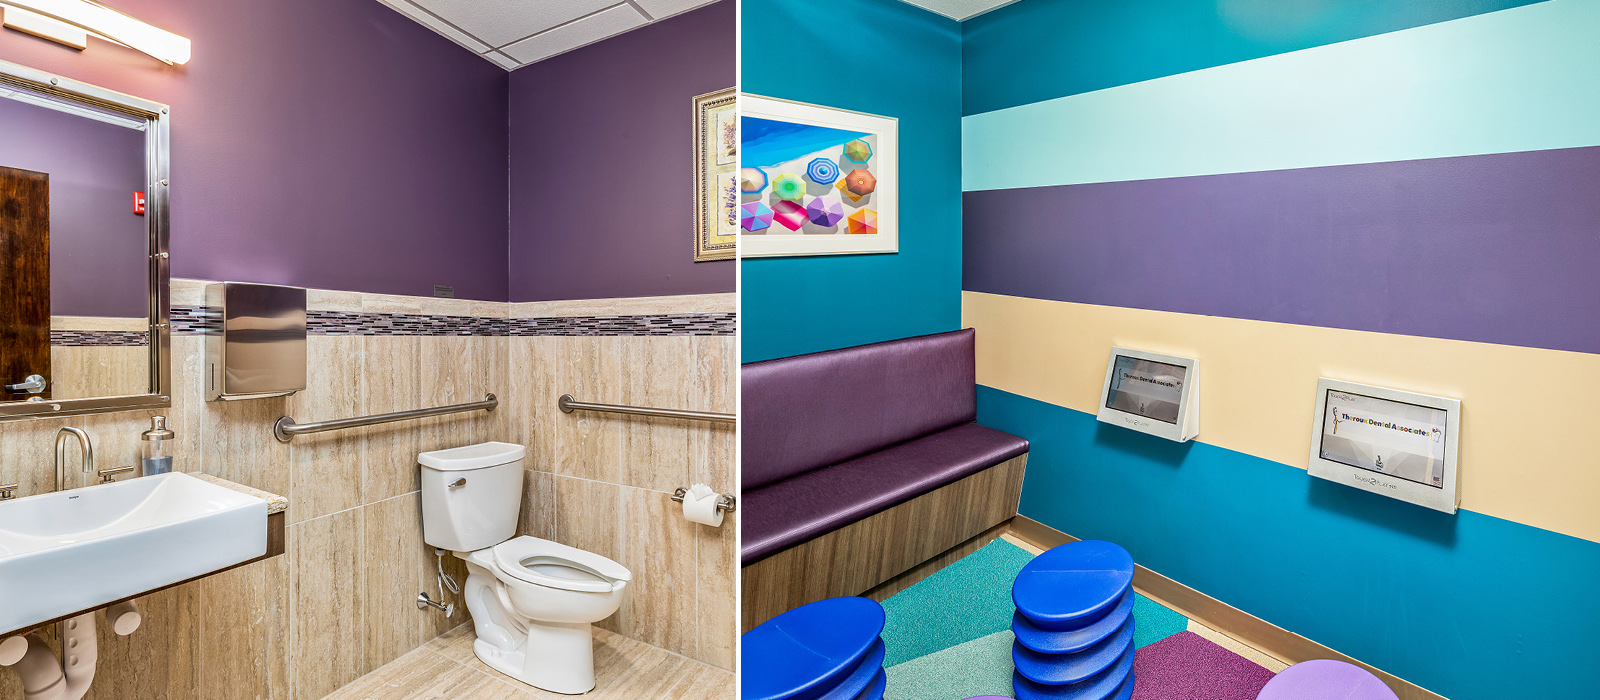 Theroux Dental children's waiting area